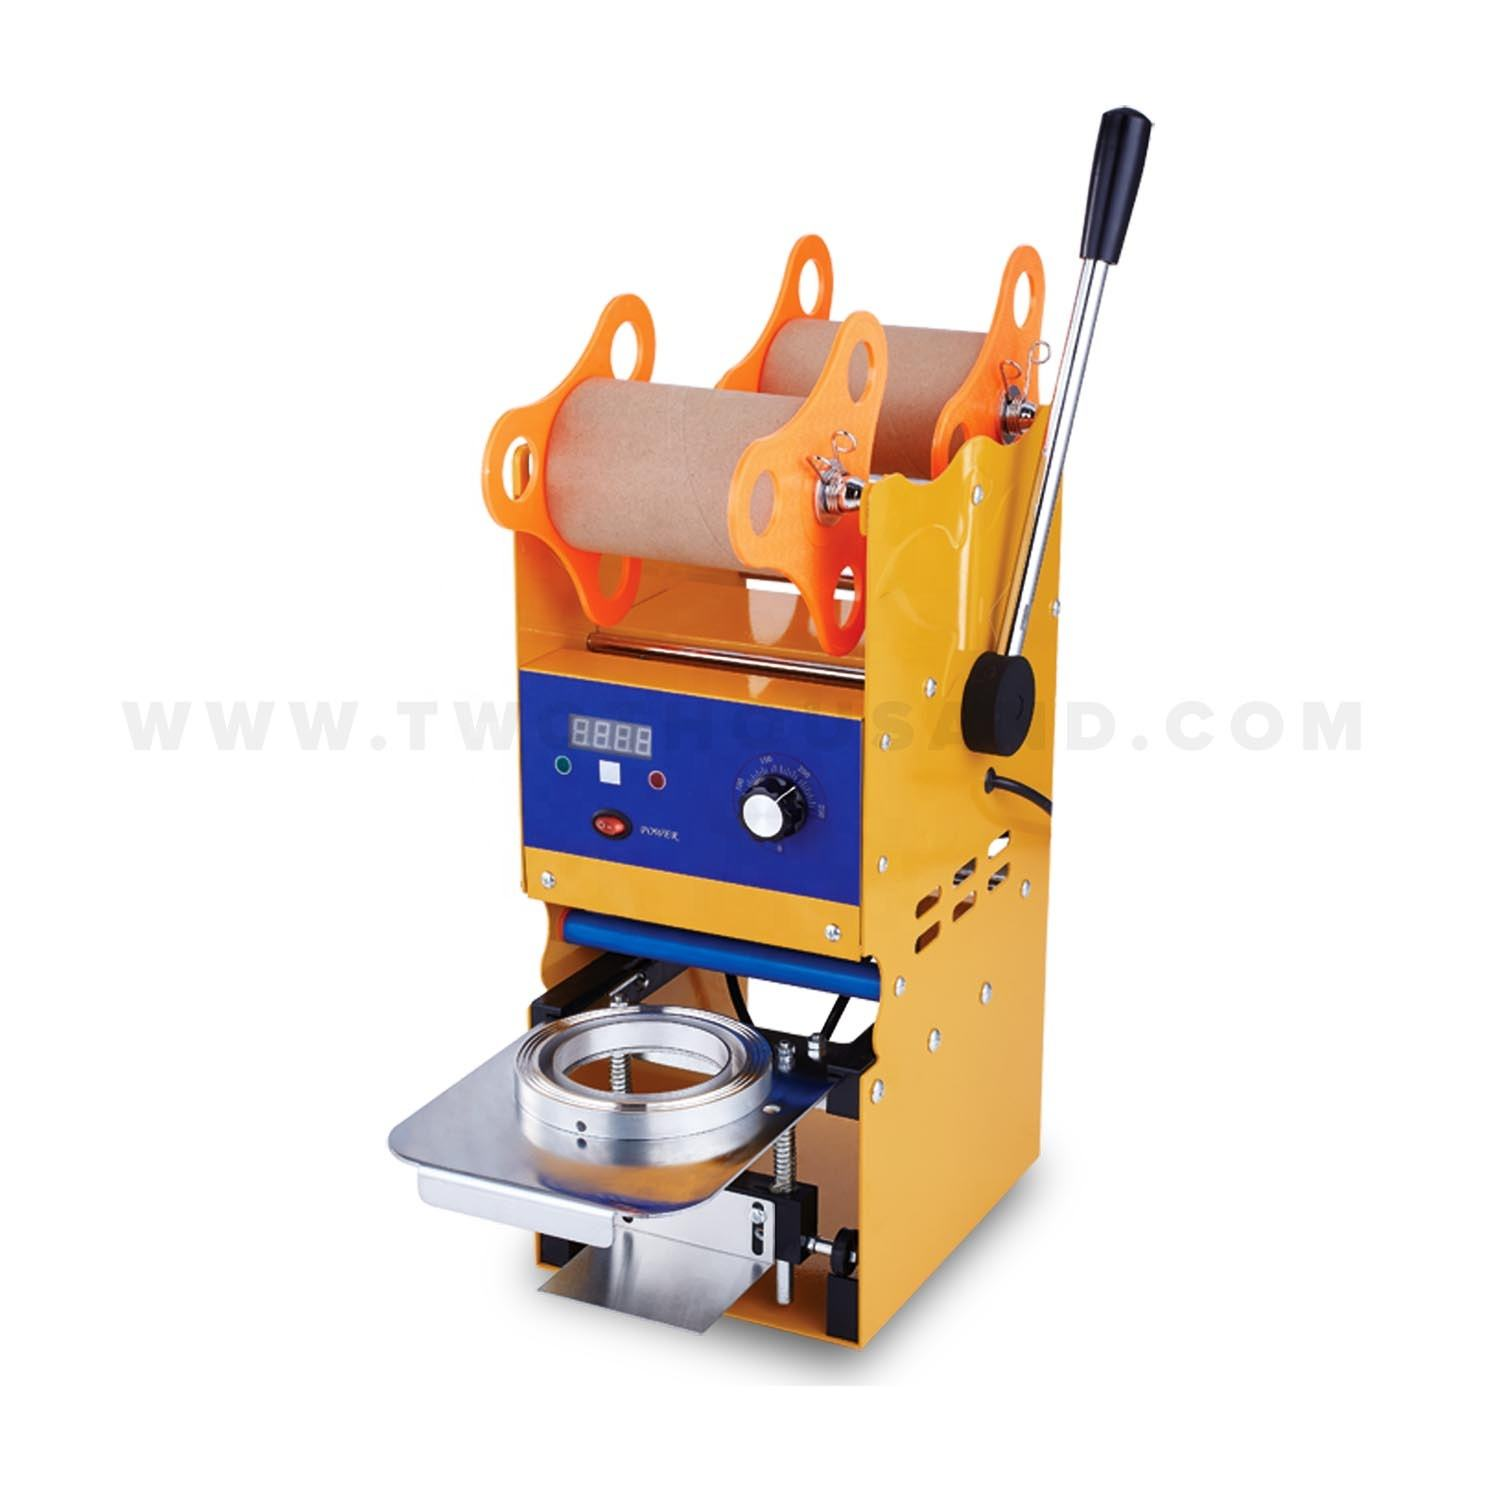 TT-A29B 300-500 Cups/Hour Plastic Disposable Juice Cup Sealing Machine